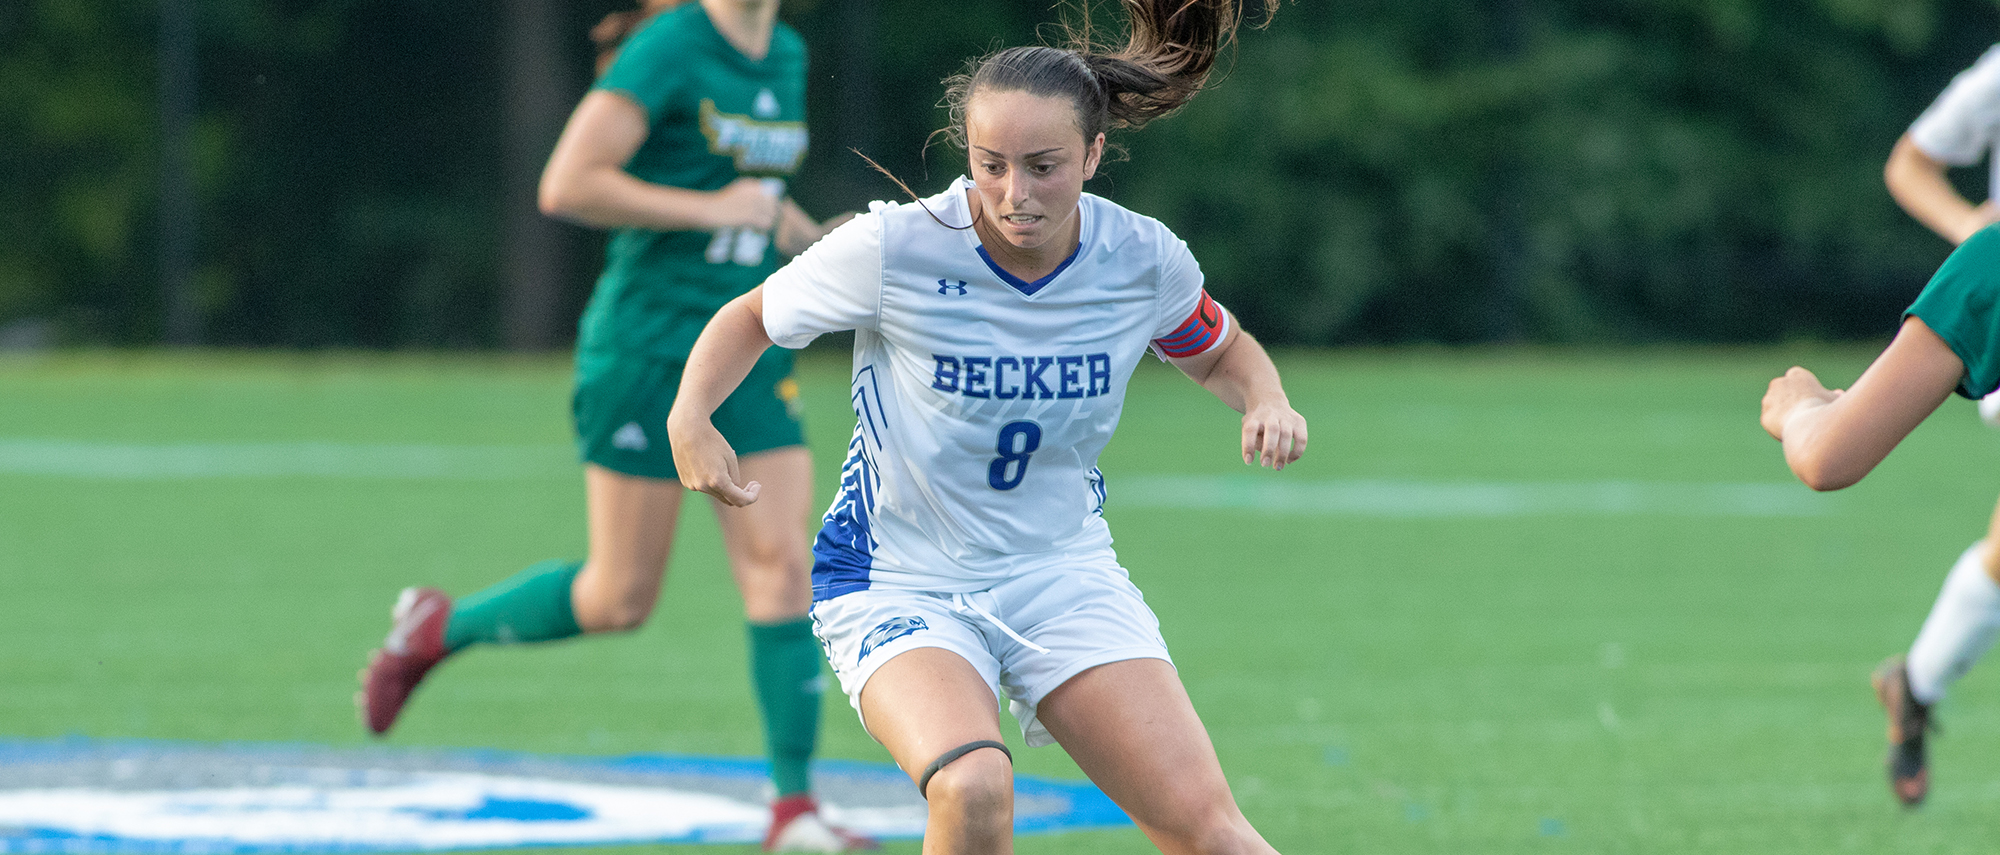 Senior women's soccer forward, Lindsey Keith, in action against Fitchburg State